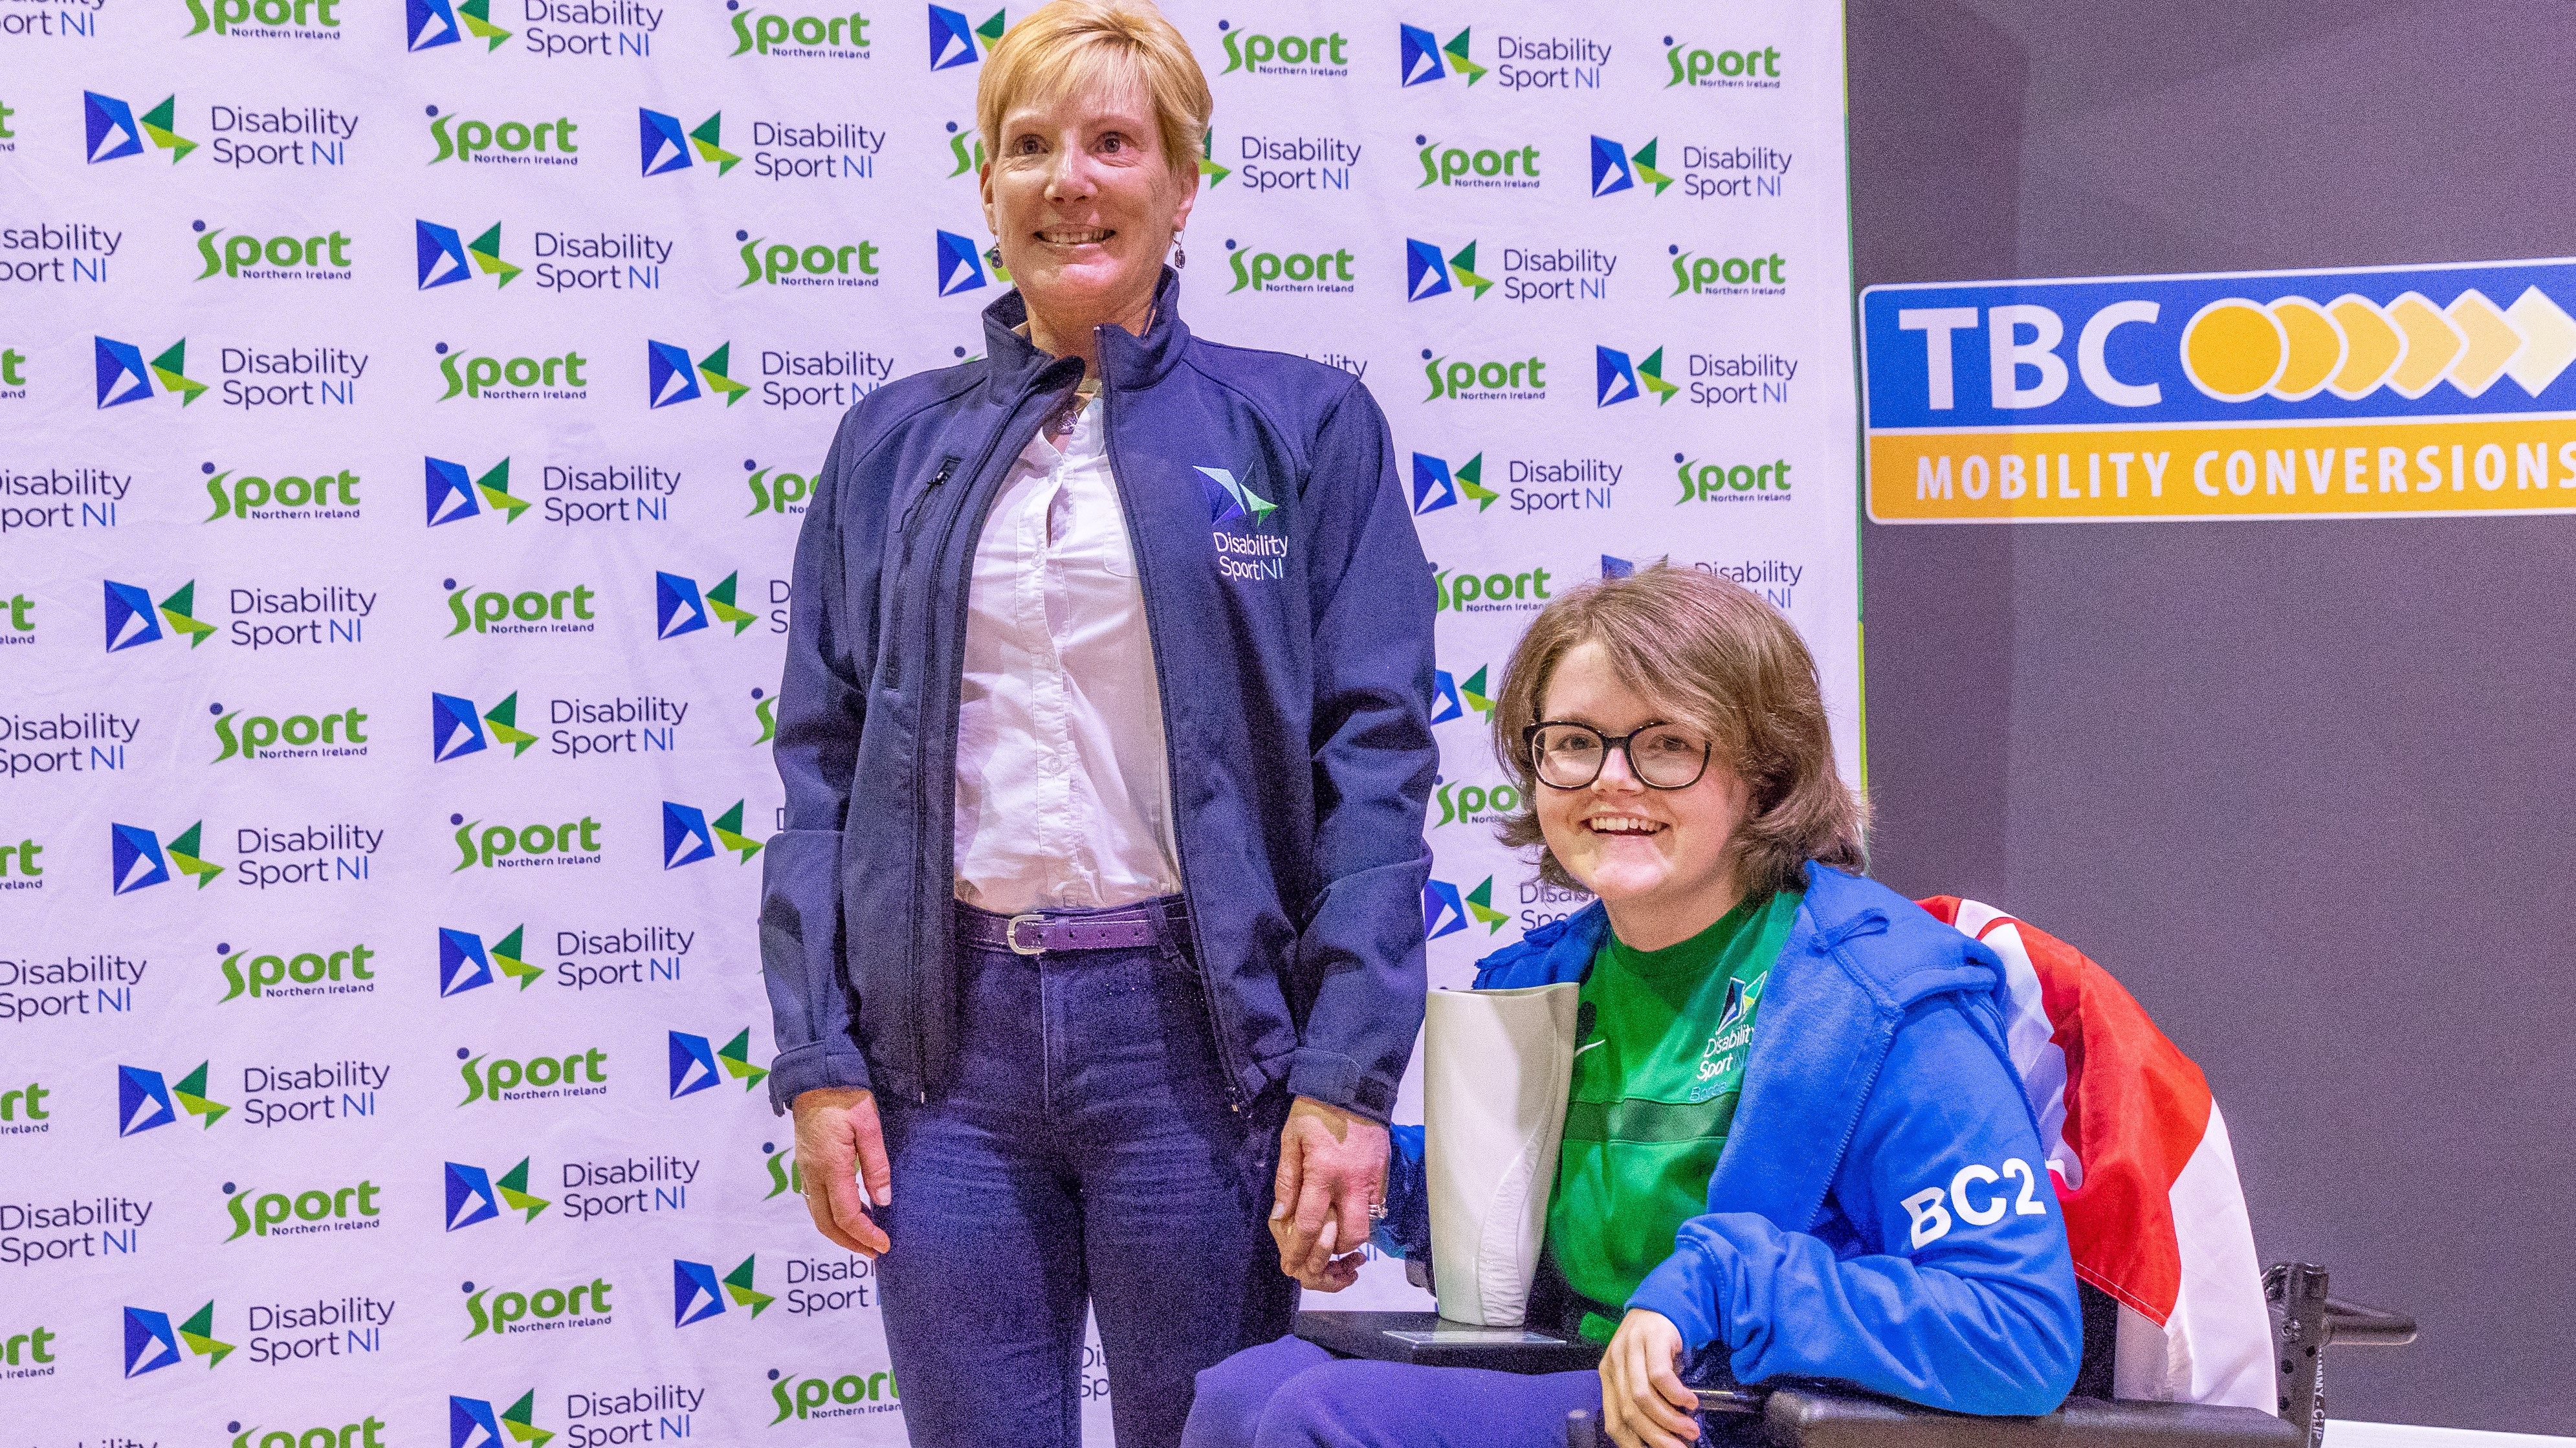 An image of Claire Taggart holding her trophy with Disability Sport NI Honorary President Dr Janet Gray MBE